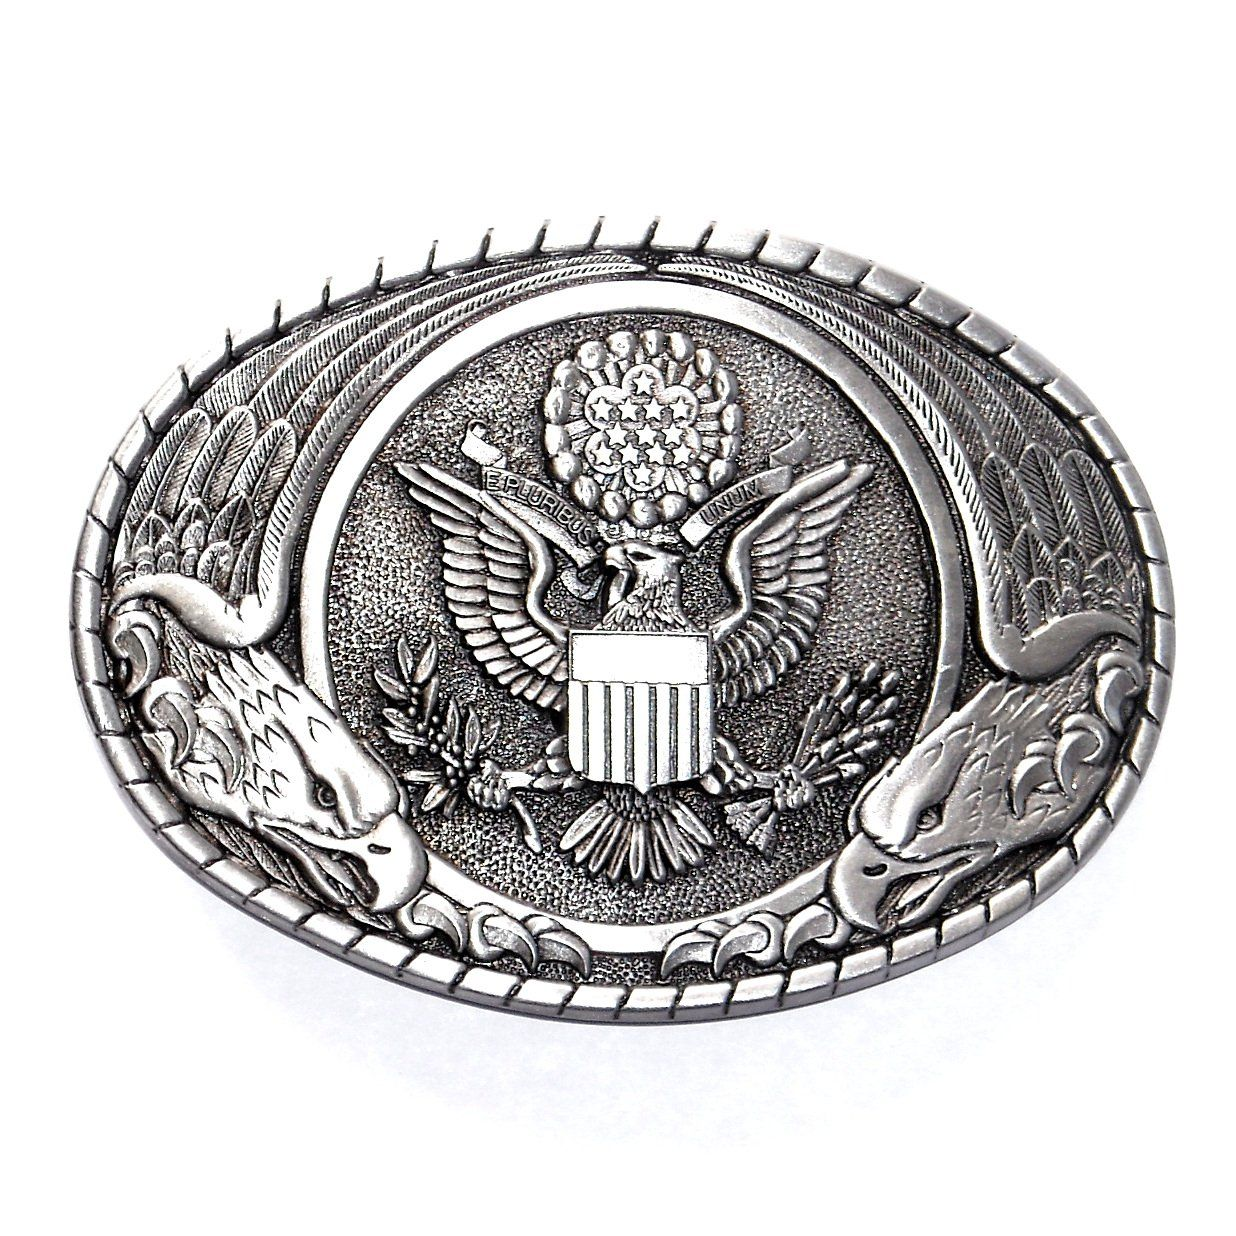 Small buckles for crafts - United States Seal Indiana Metal Craft Solid Pewter Classic Western Belt Buckle